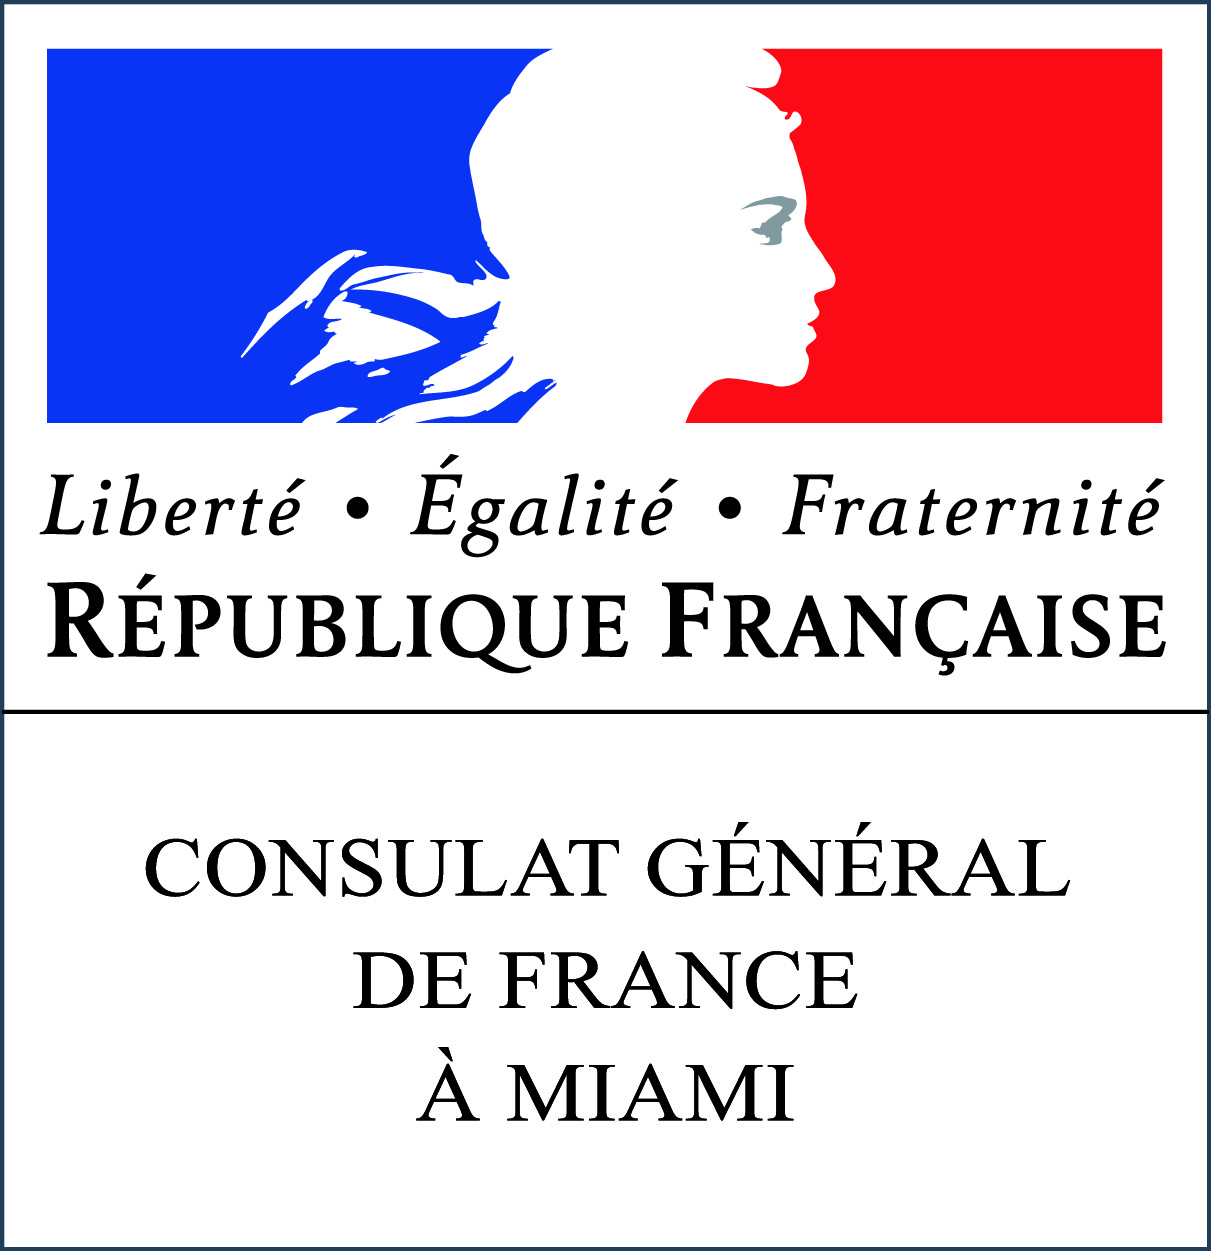 Consulate of France in Miami